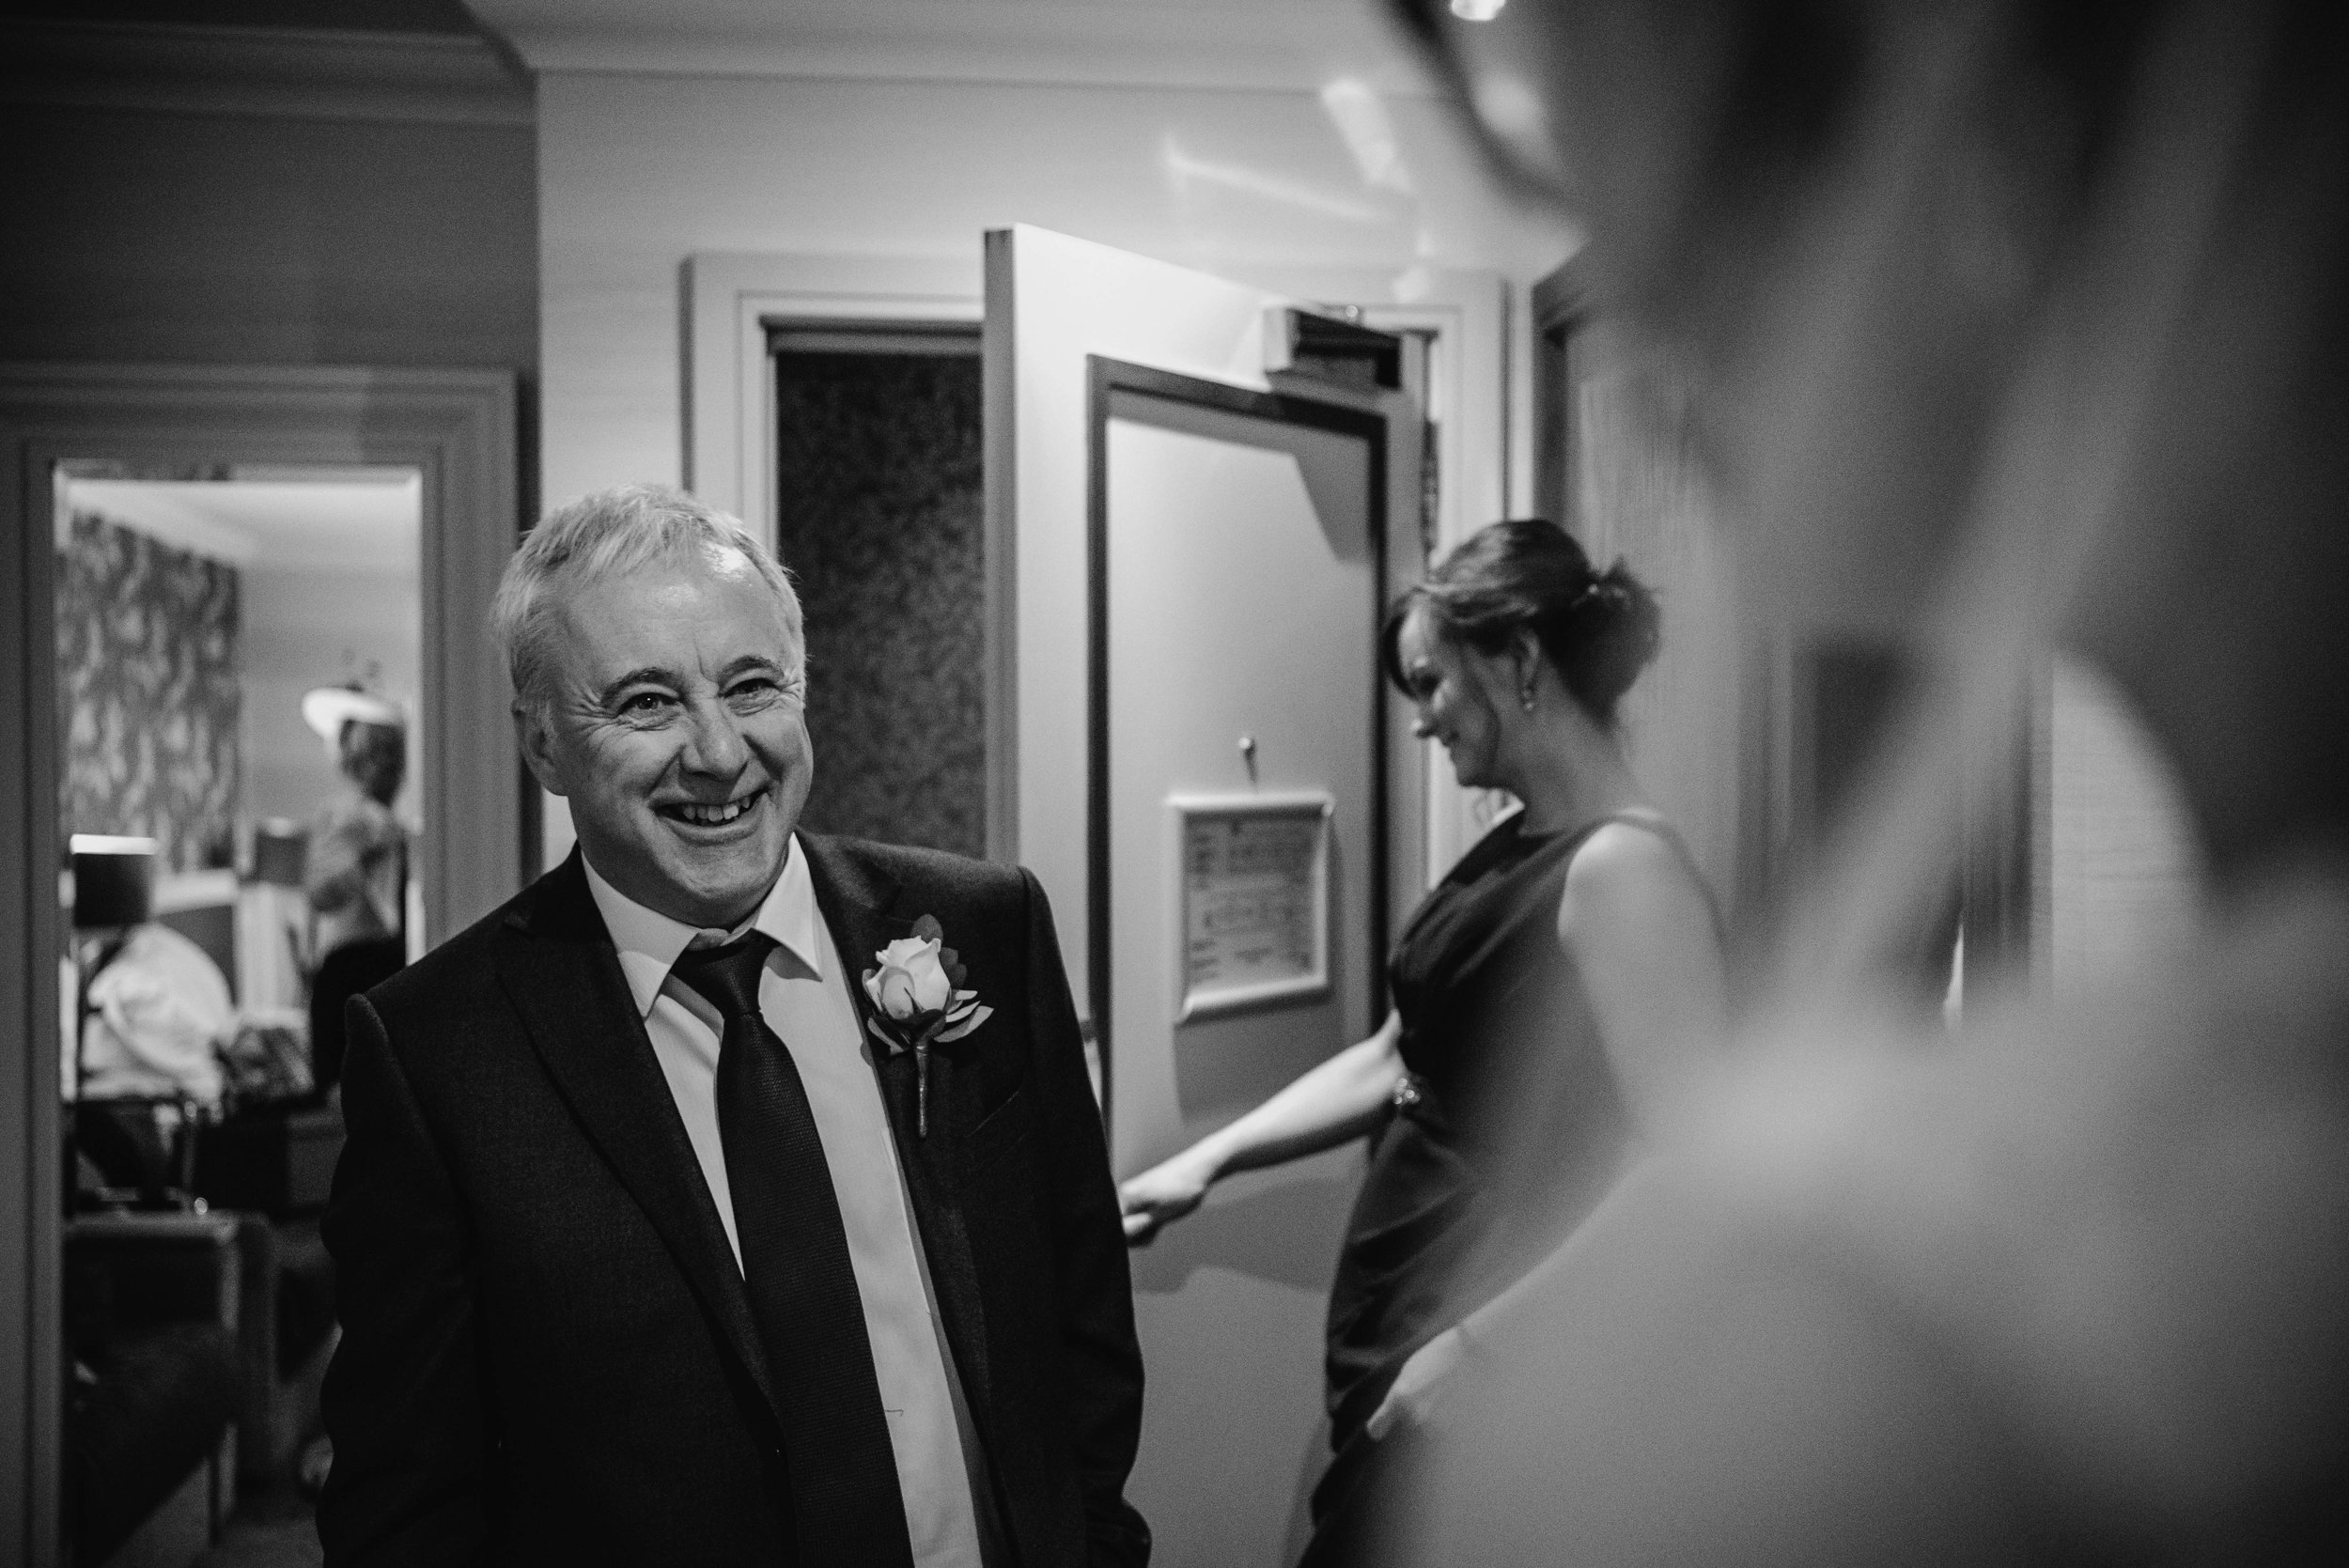 Dad revealed to his daughter on their wedding day